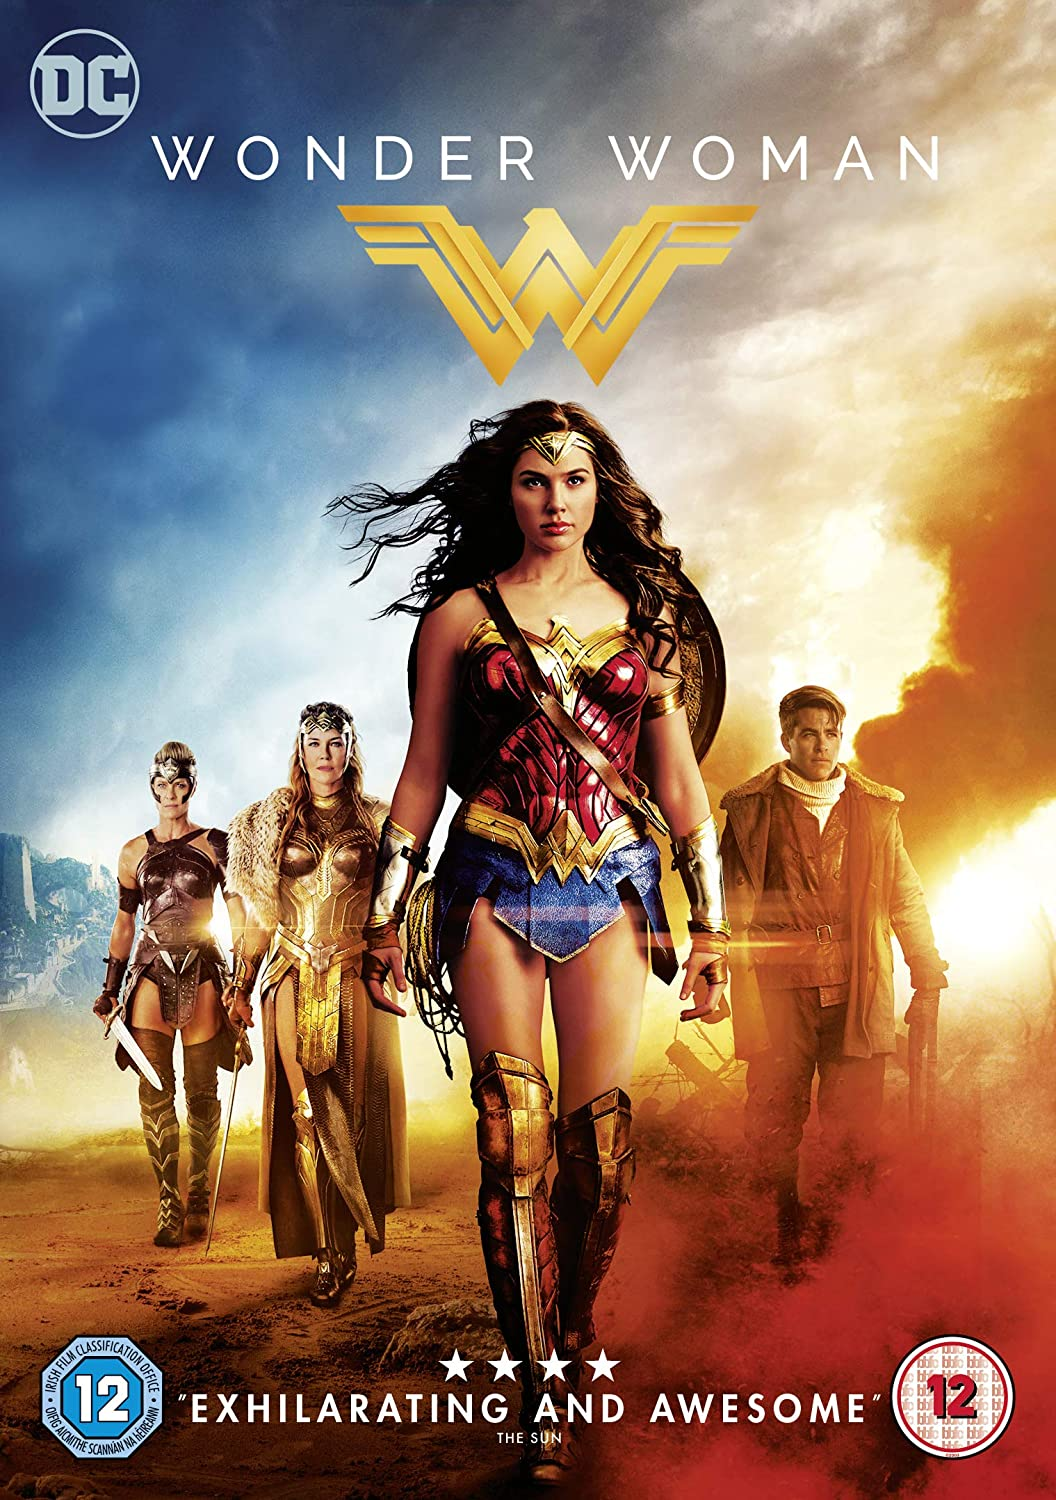 Amazon.co.jp | Wonder Woman [Regions 2, 4] DVD・ブルーレイ -